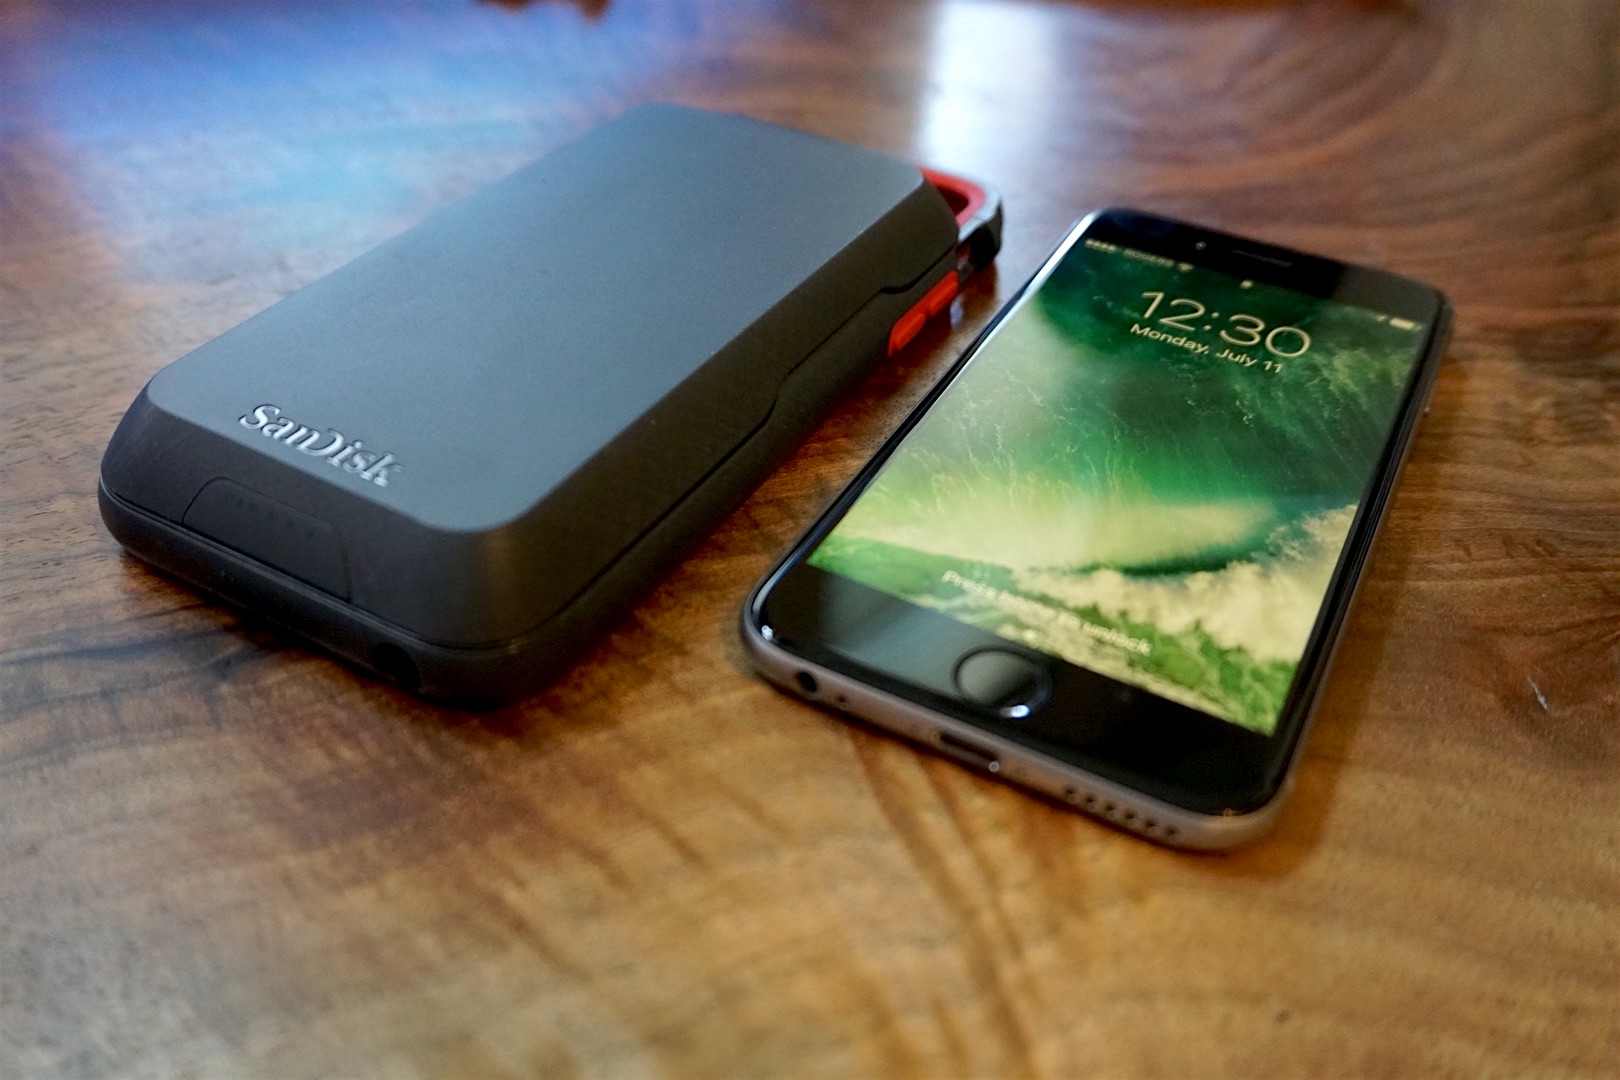 online store 60eb9 68680 Review: SanDisk's iXpand Memory Case adds up to 128GB storage ...